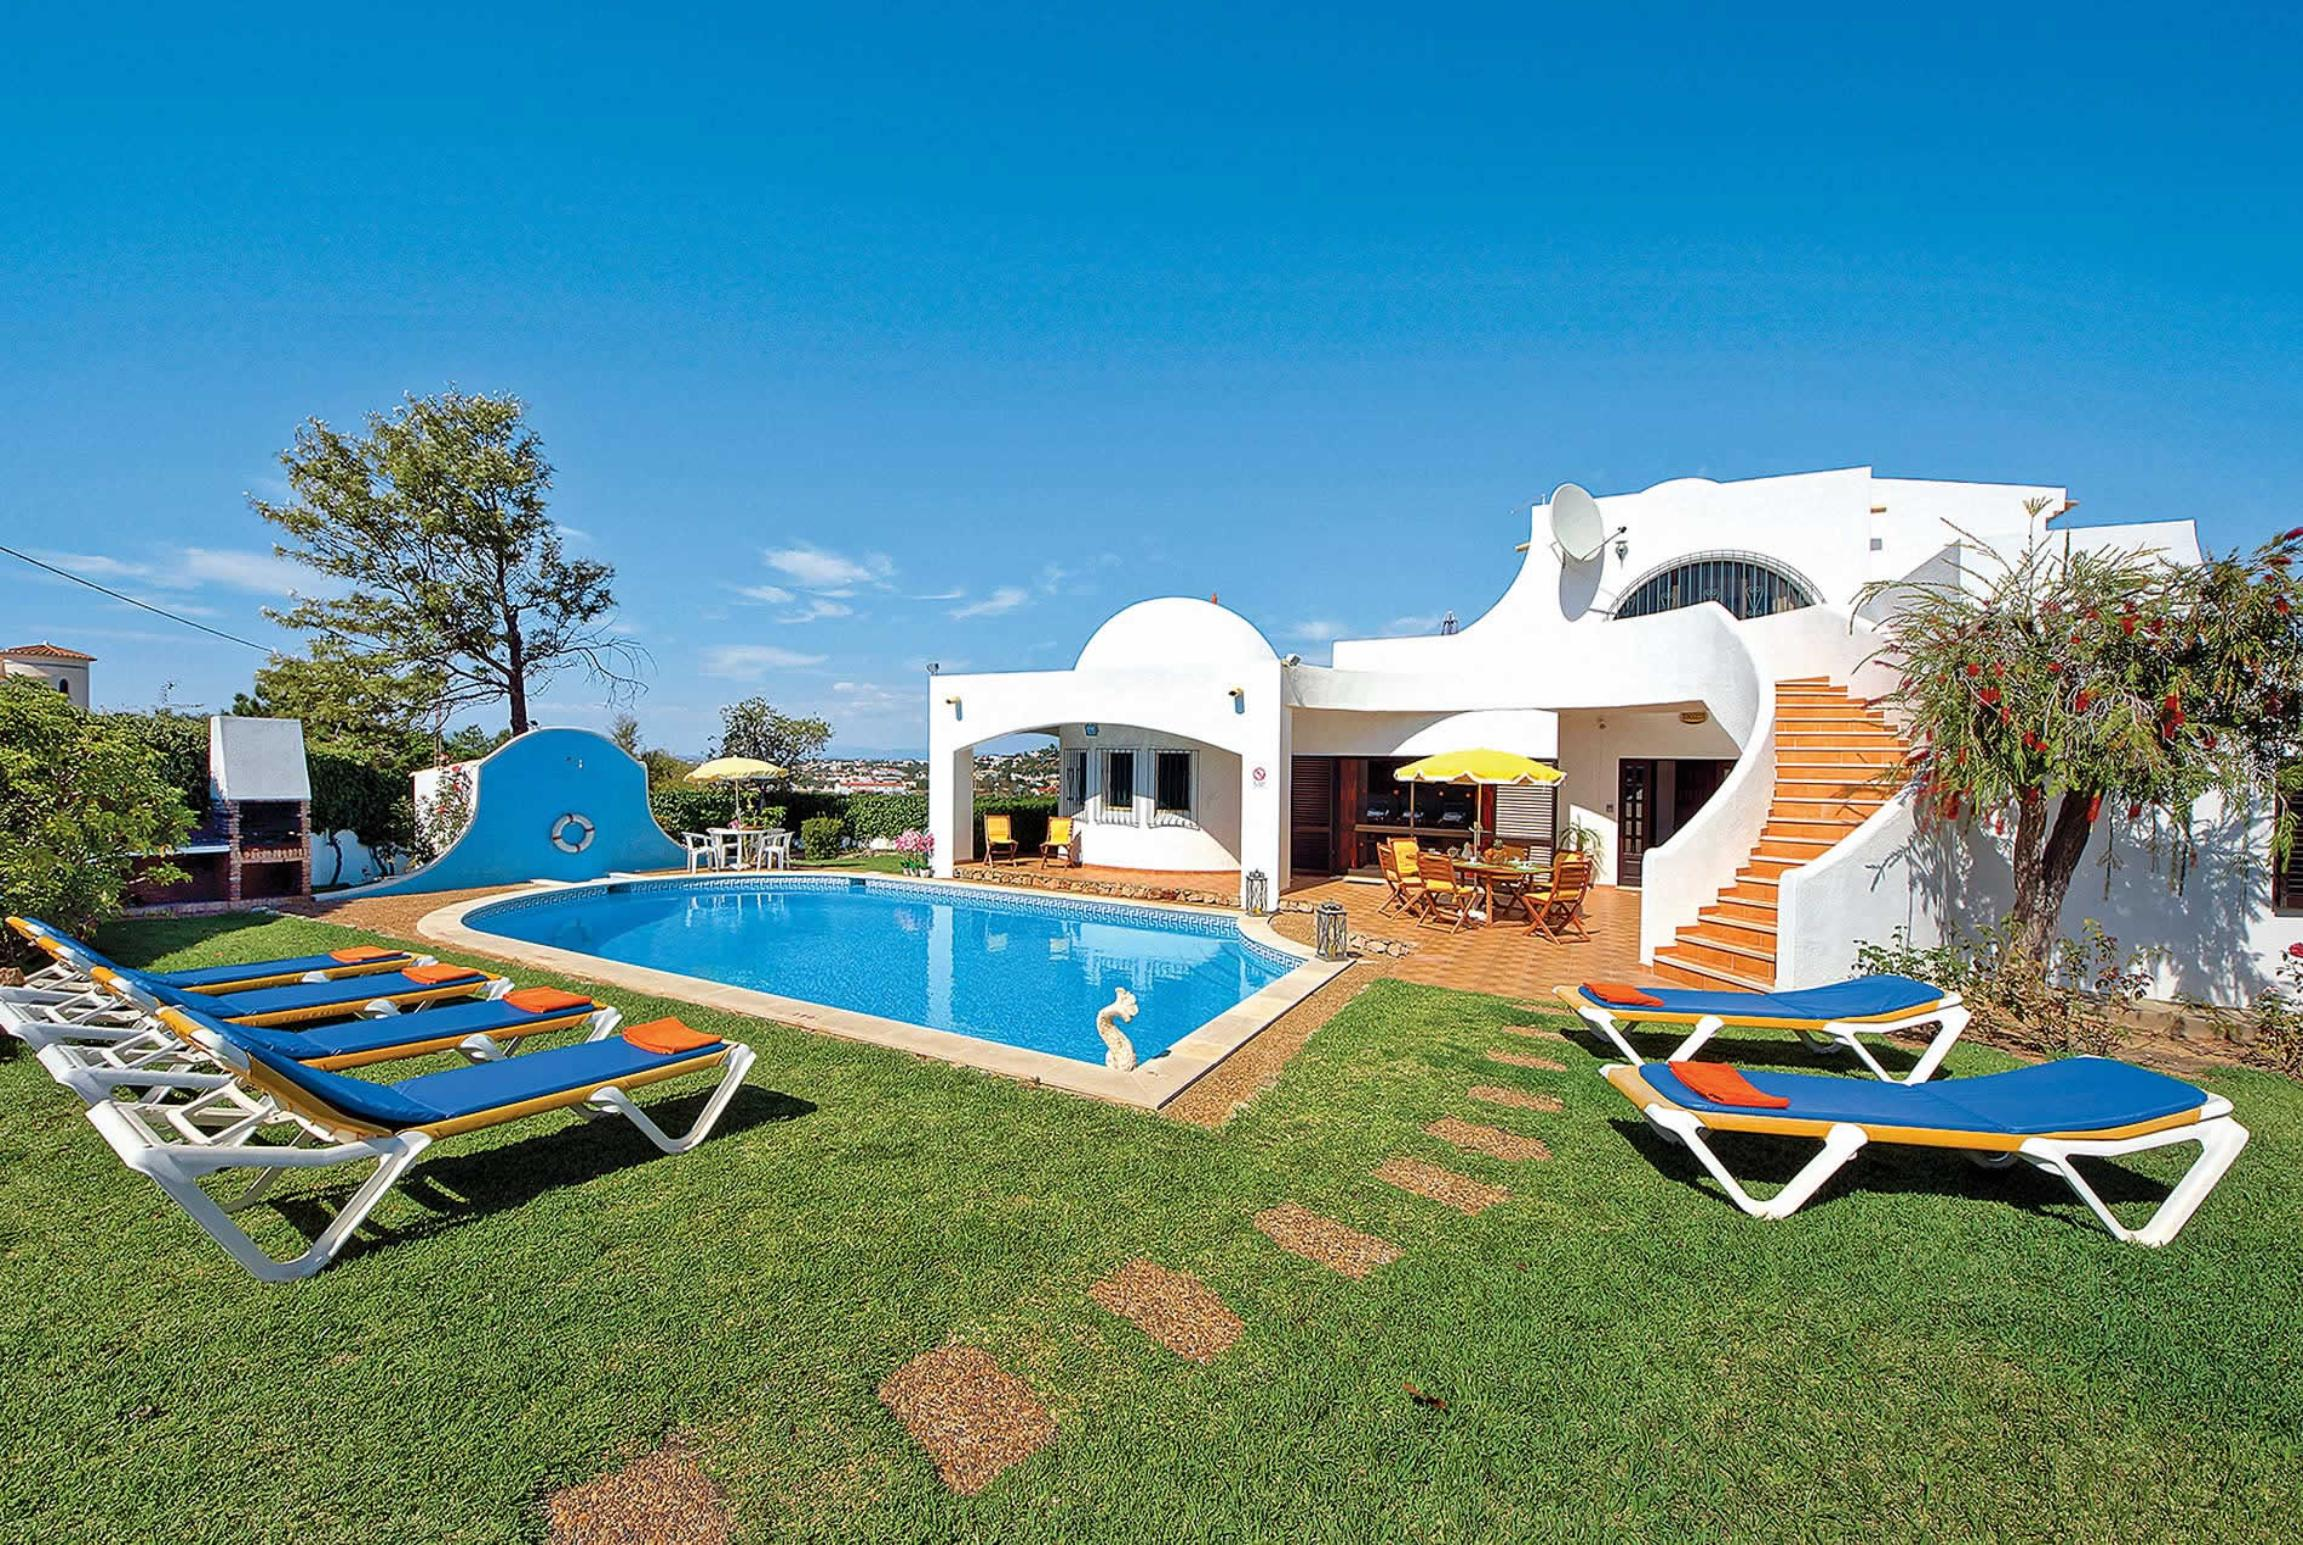 Read more about Gira villa